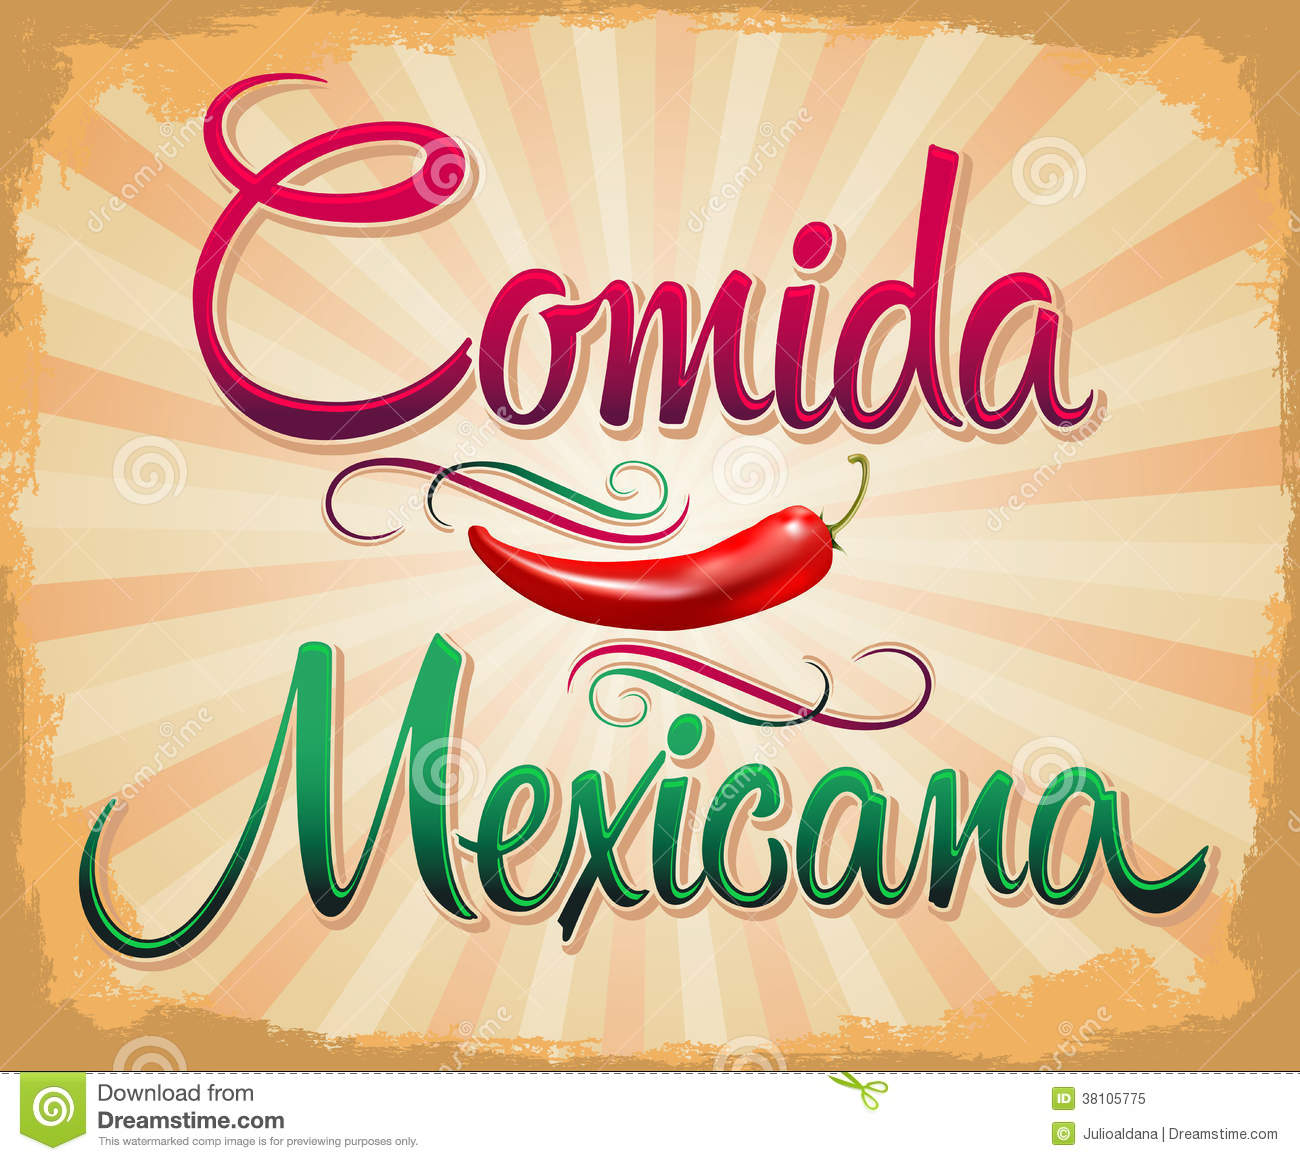 Mexican Food Spanish Text Royalty Free Stock Photo Image 38105775 - Mexican food spanish text royalty free stock photo image 38105775